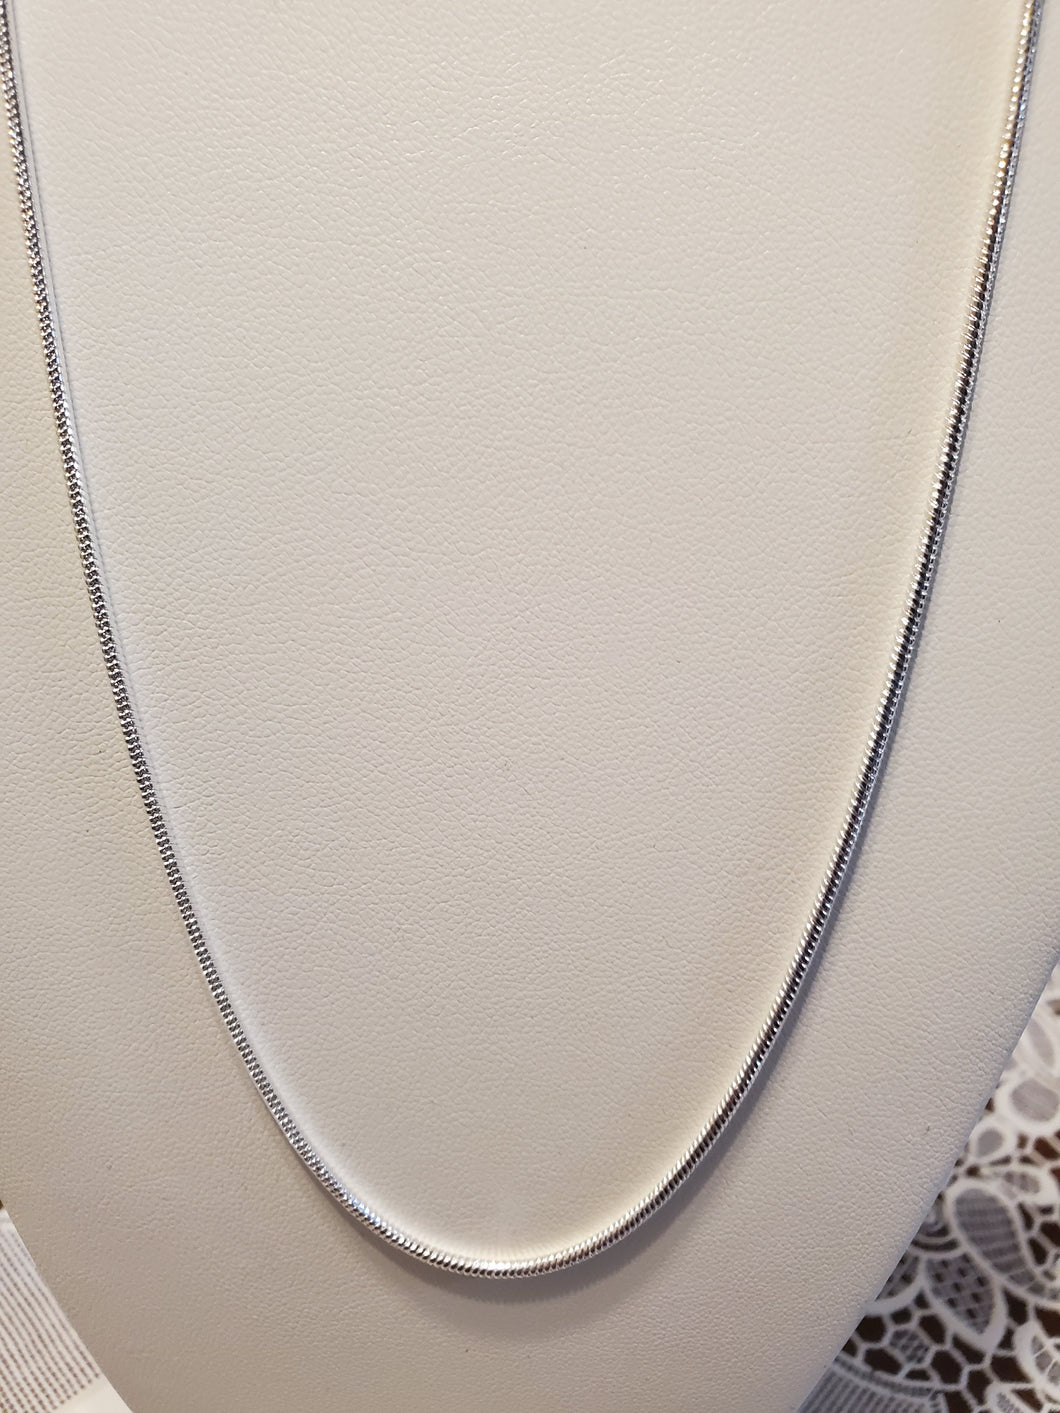 Sterling Silver 18 Inch Round Snake Chain 1.5 MM